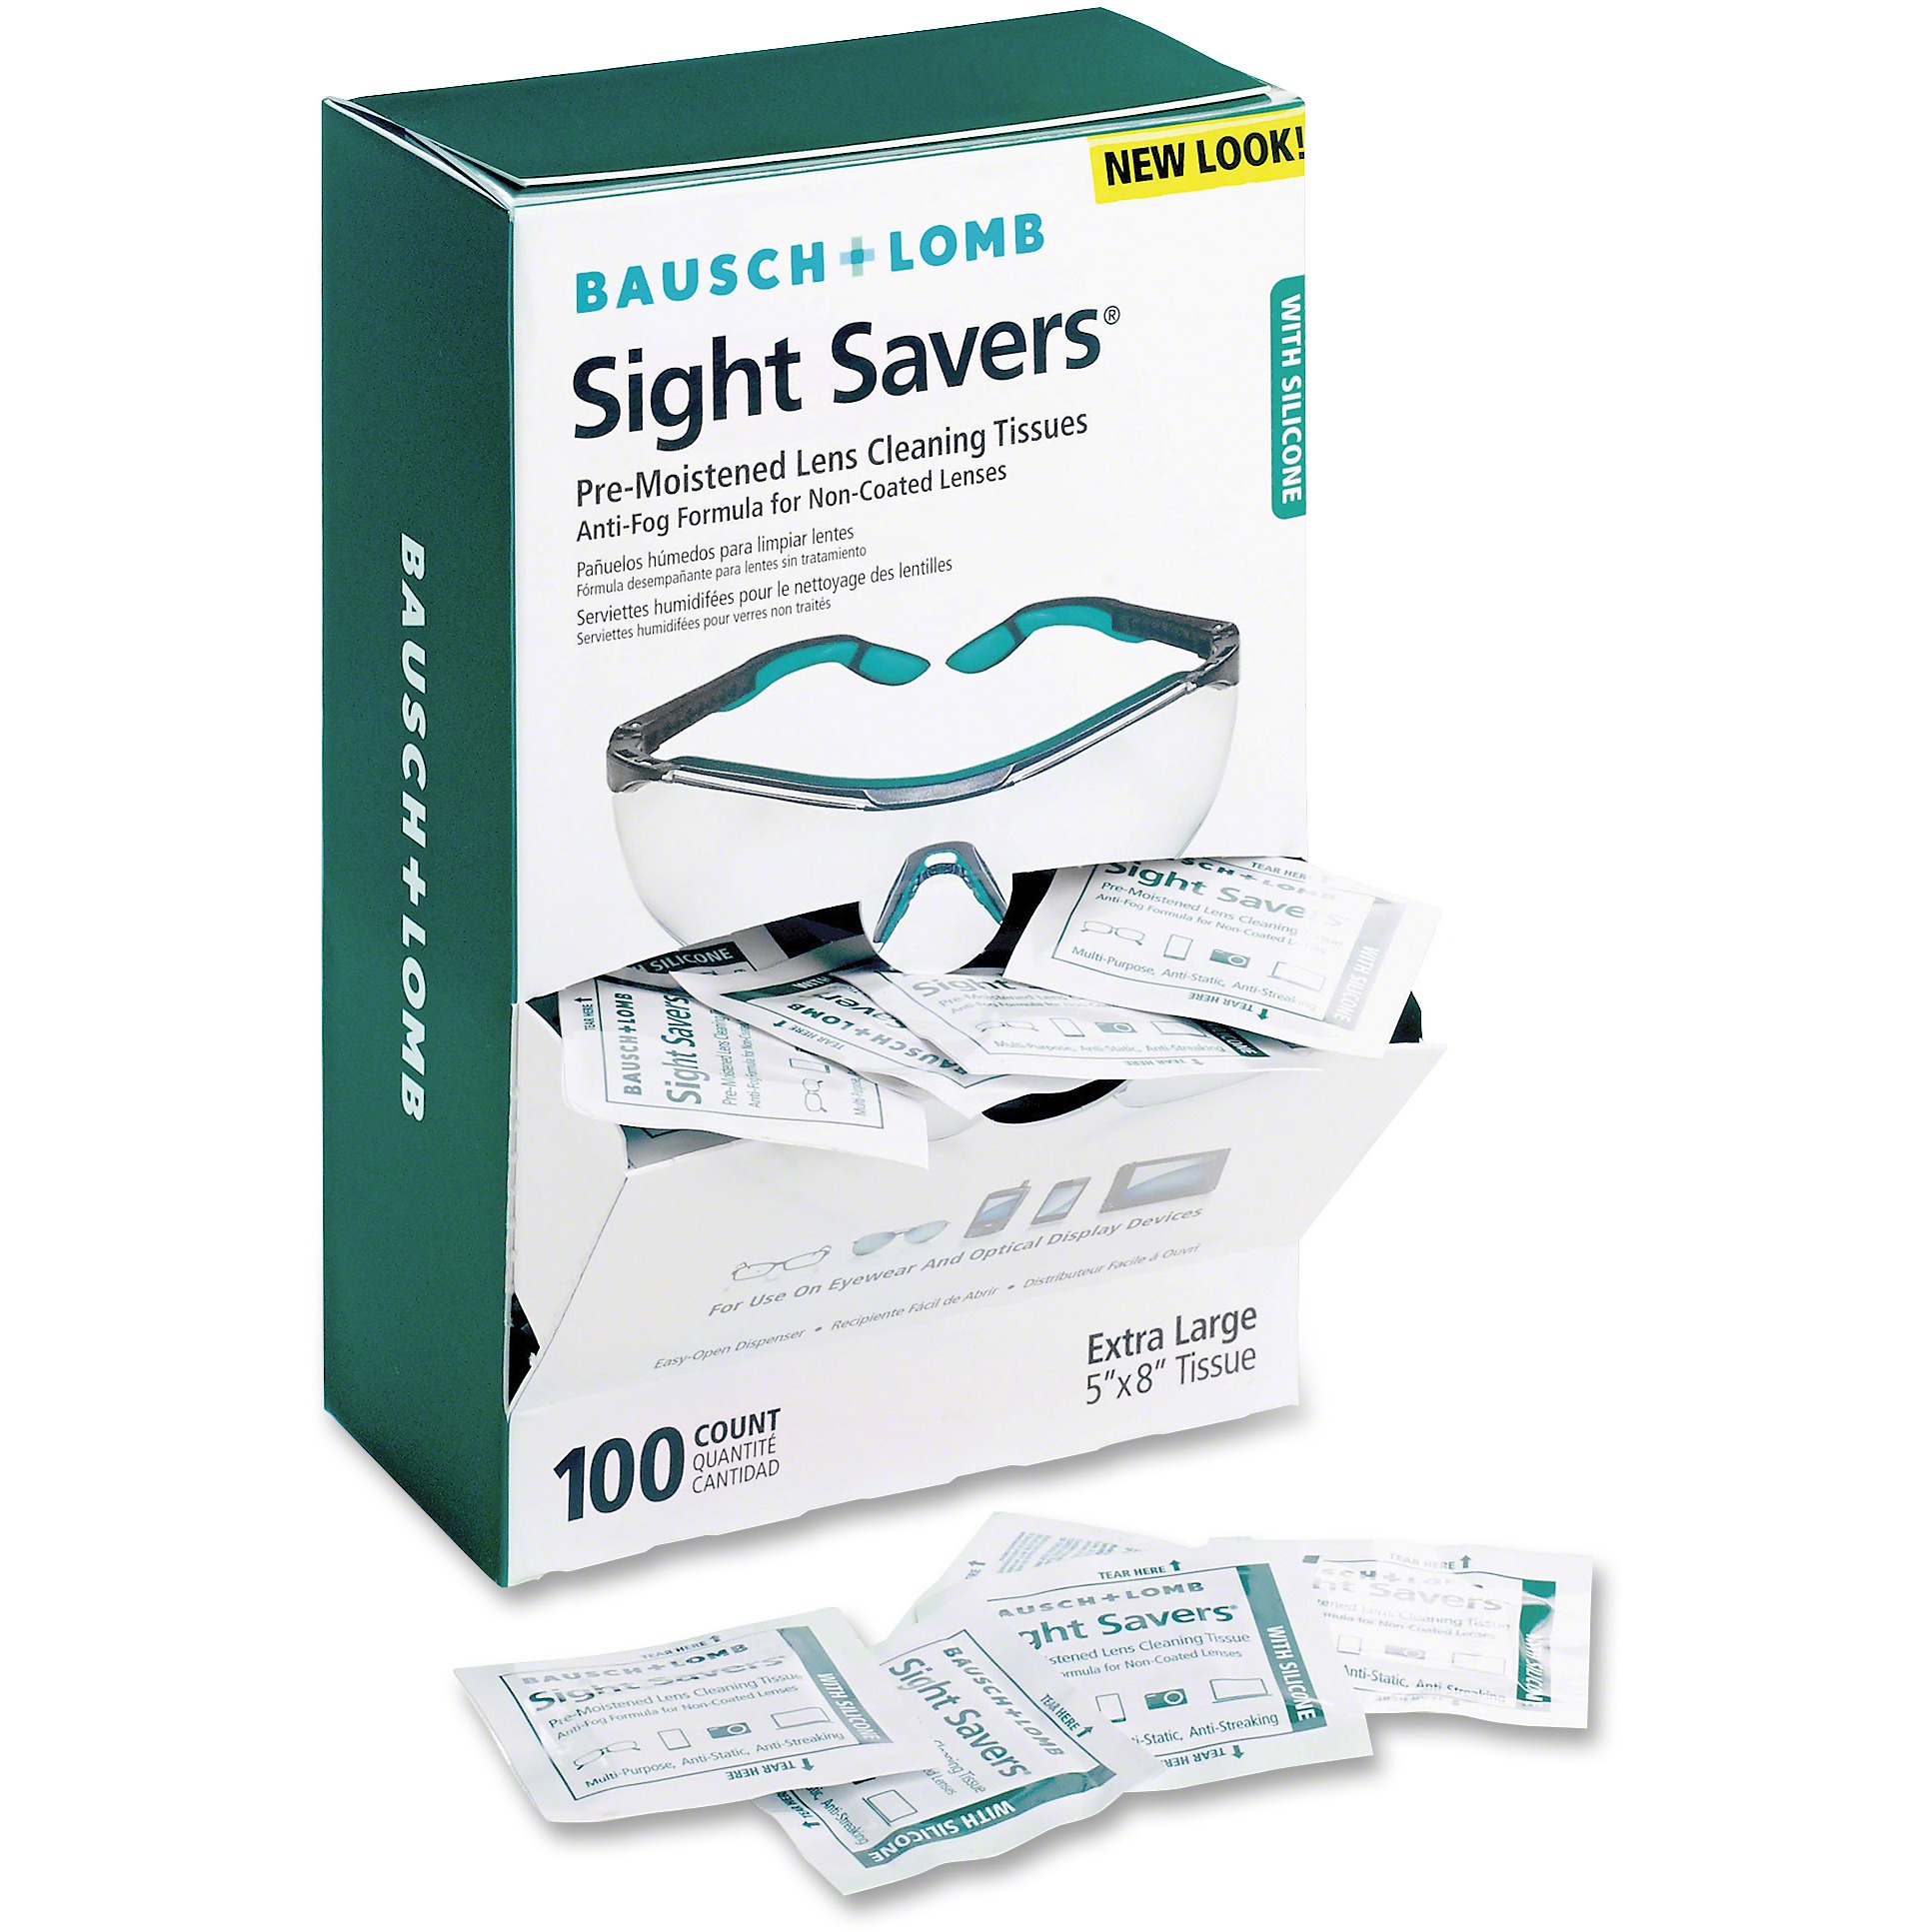 Bausch & Lomb Sight Savers Pre-Moistened Anti-Fog Tissues with Silicone, 100/Box